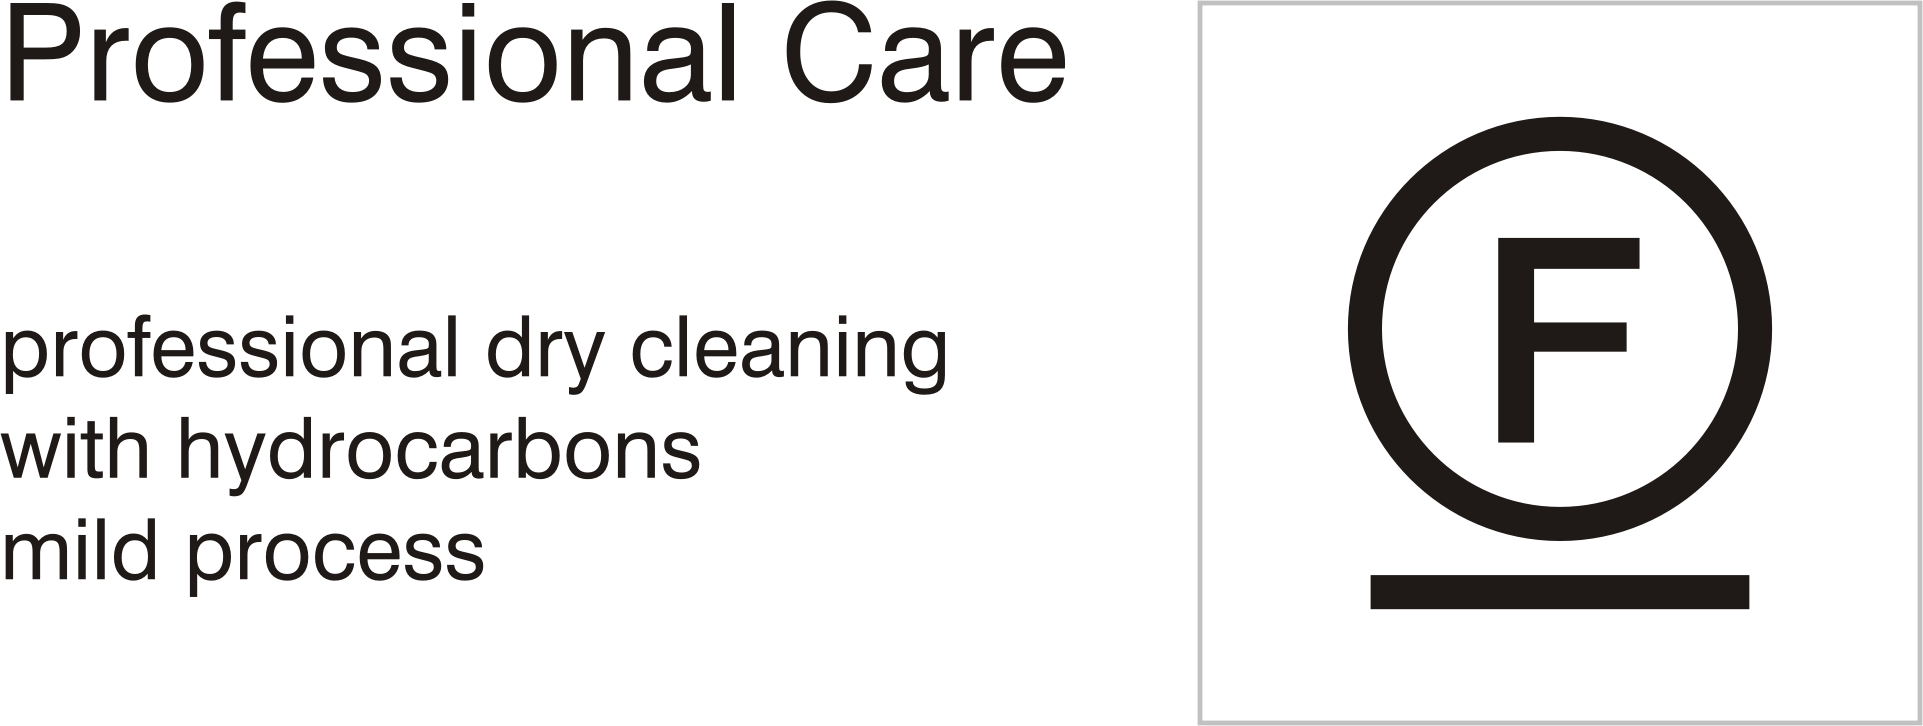 Care symbols, professional care: dry clean with hydrocarbons - mild process by Vanja